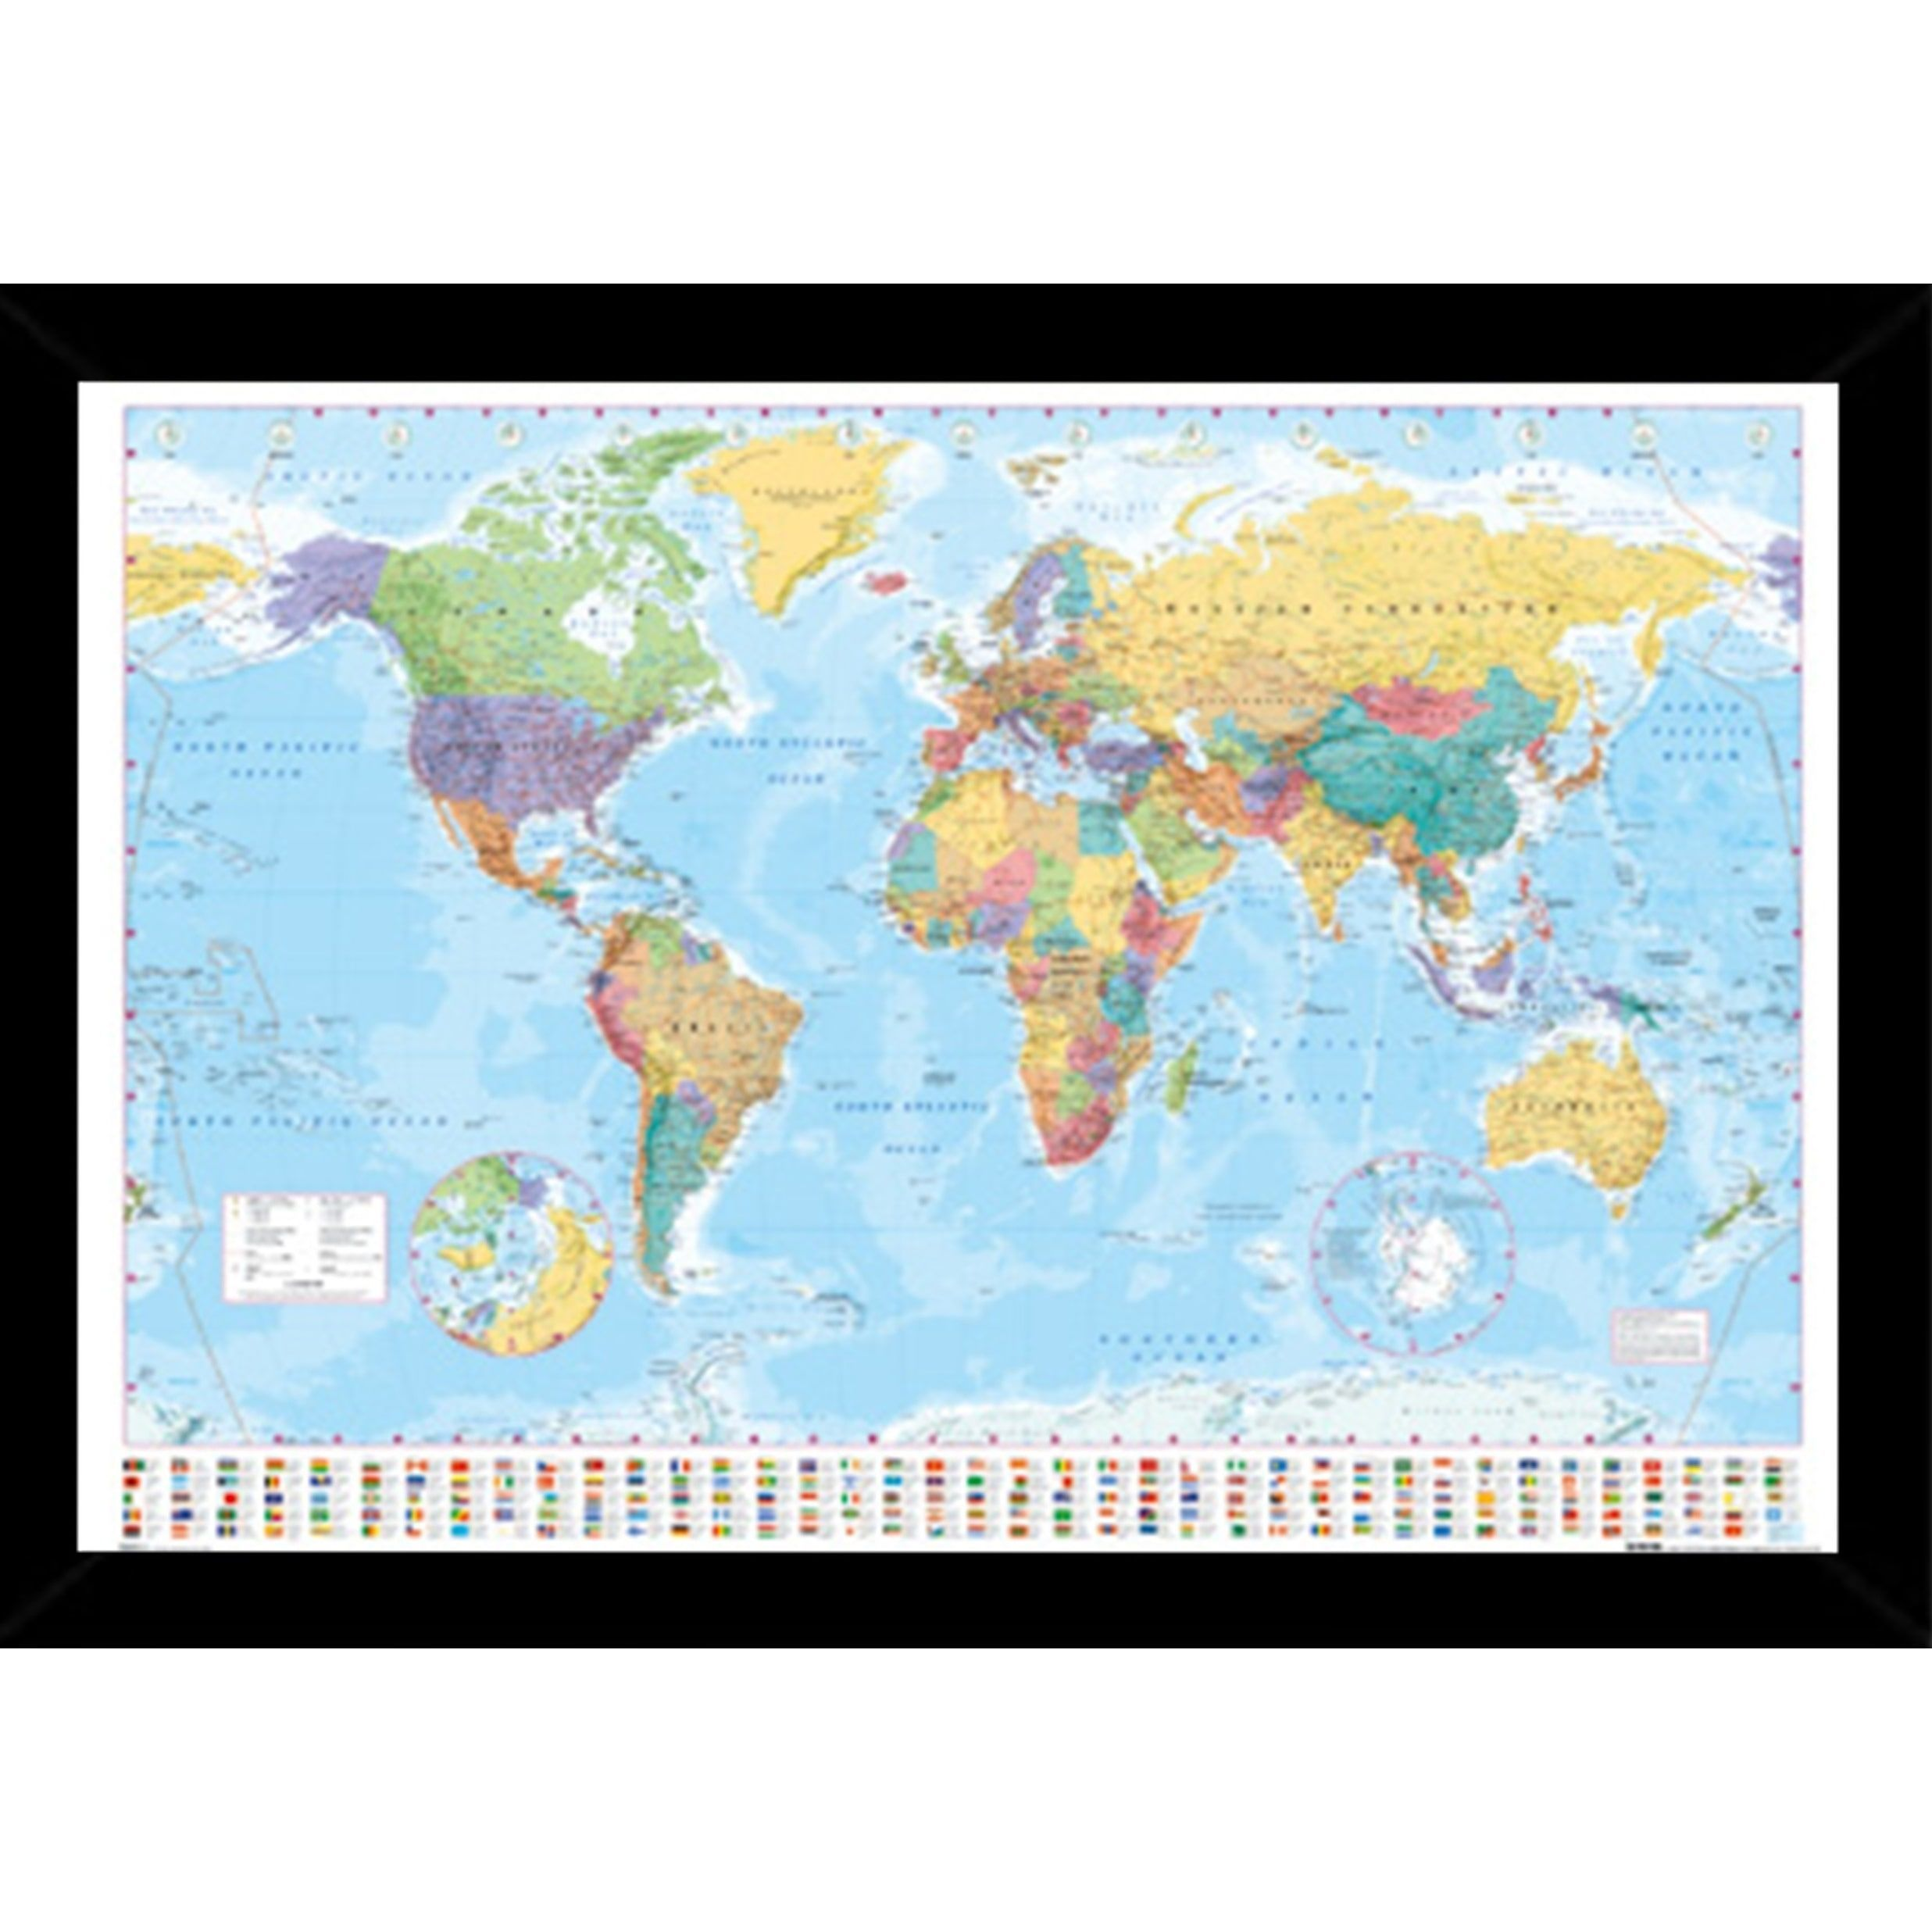 World map with choice of frame products pinterest choices overstock online shopping bedding furniture electronics jewelry clothing more map frameposter gumiabroncs Gallery